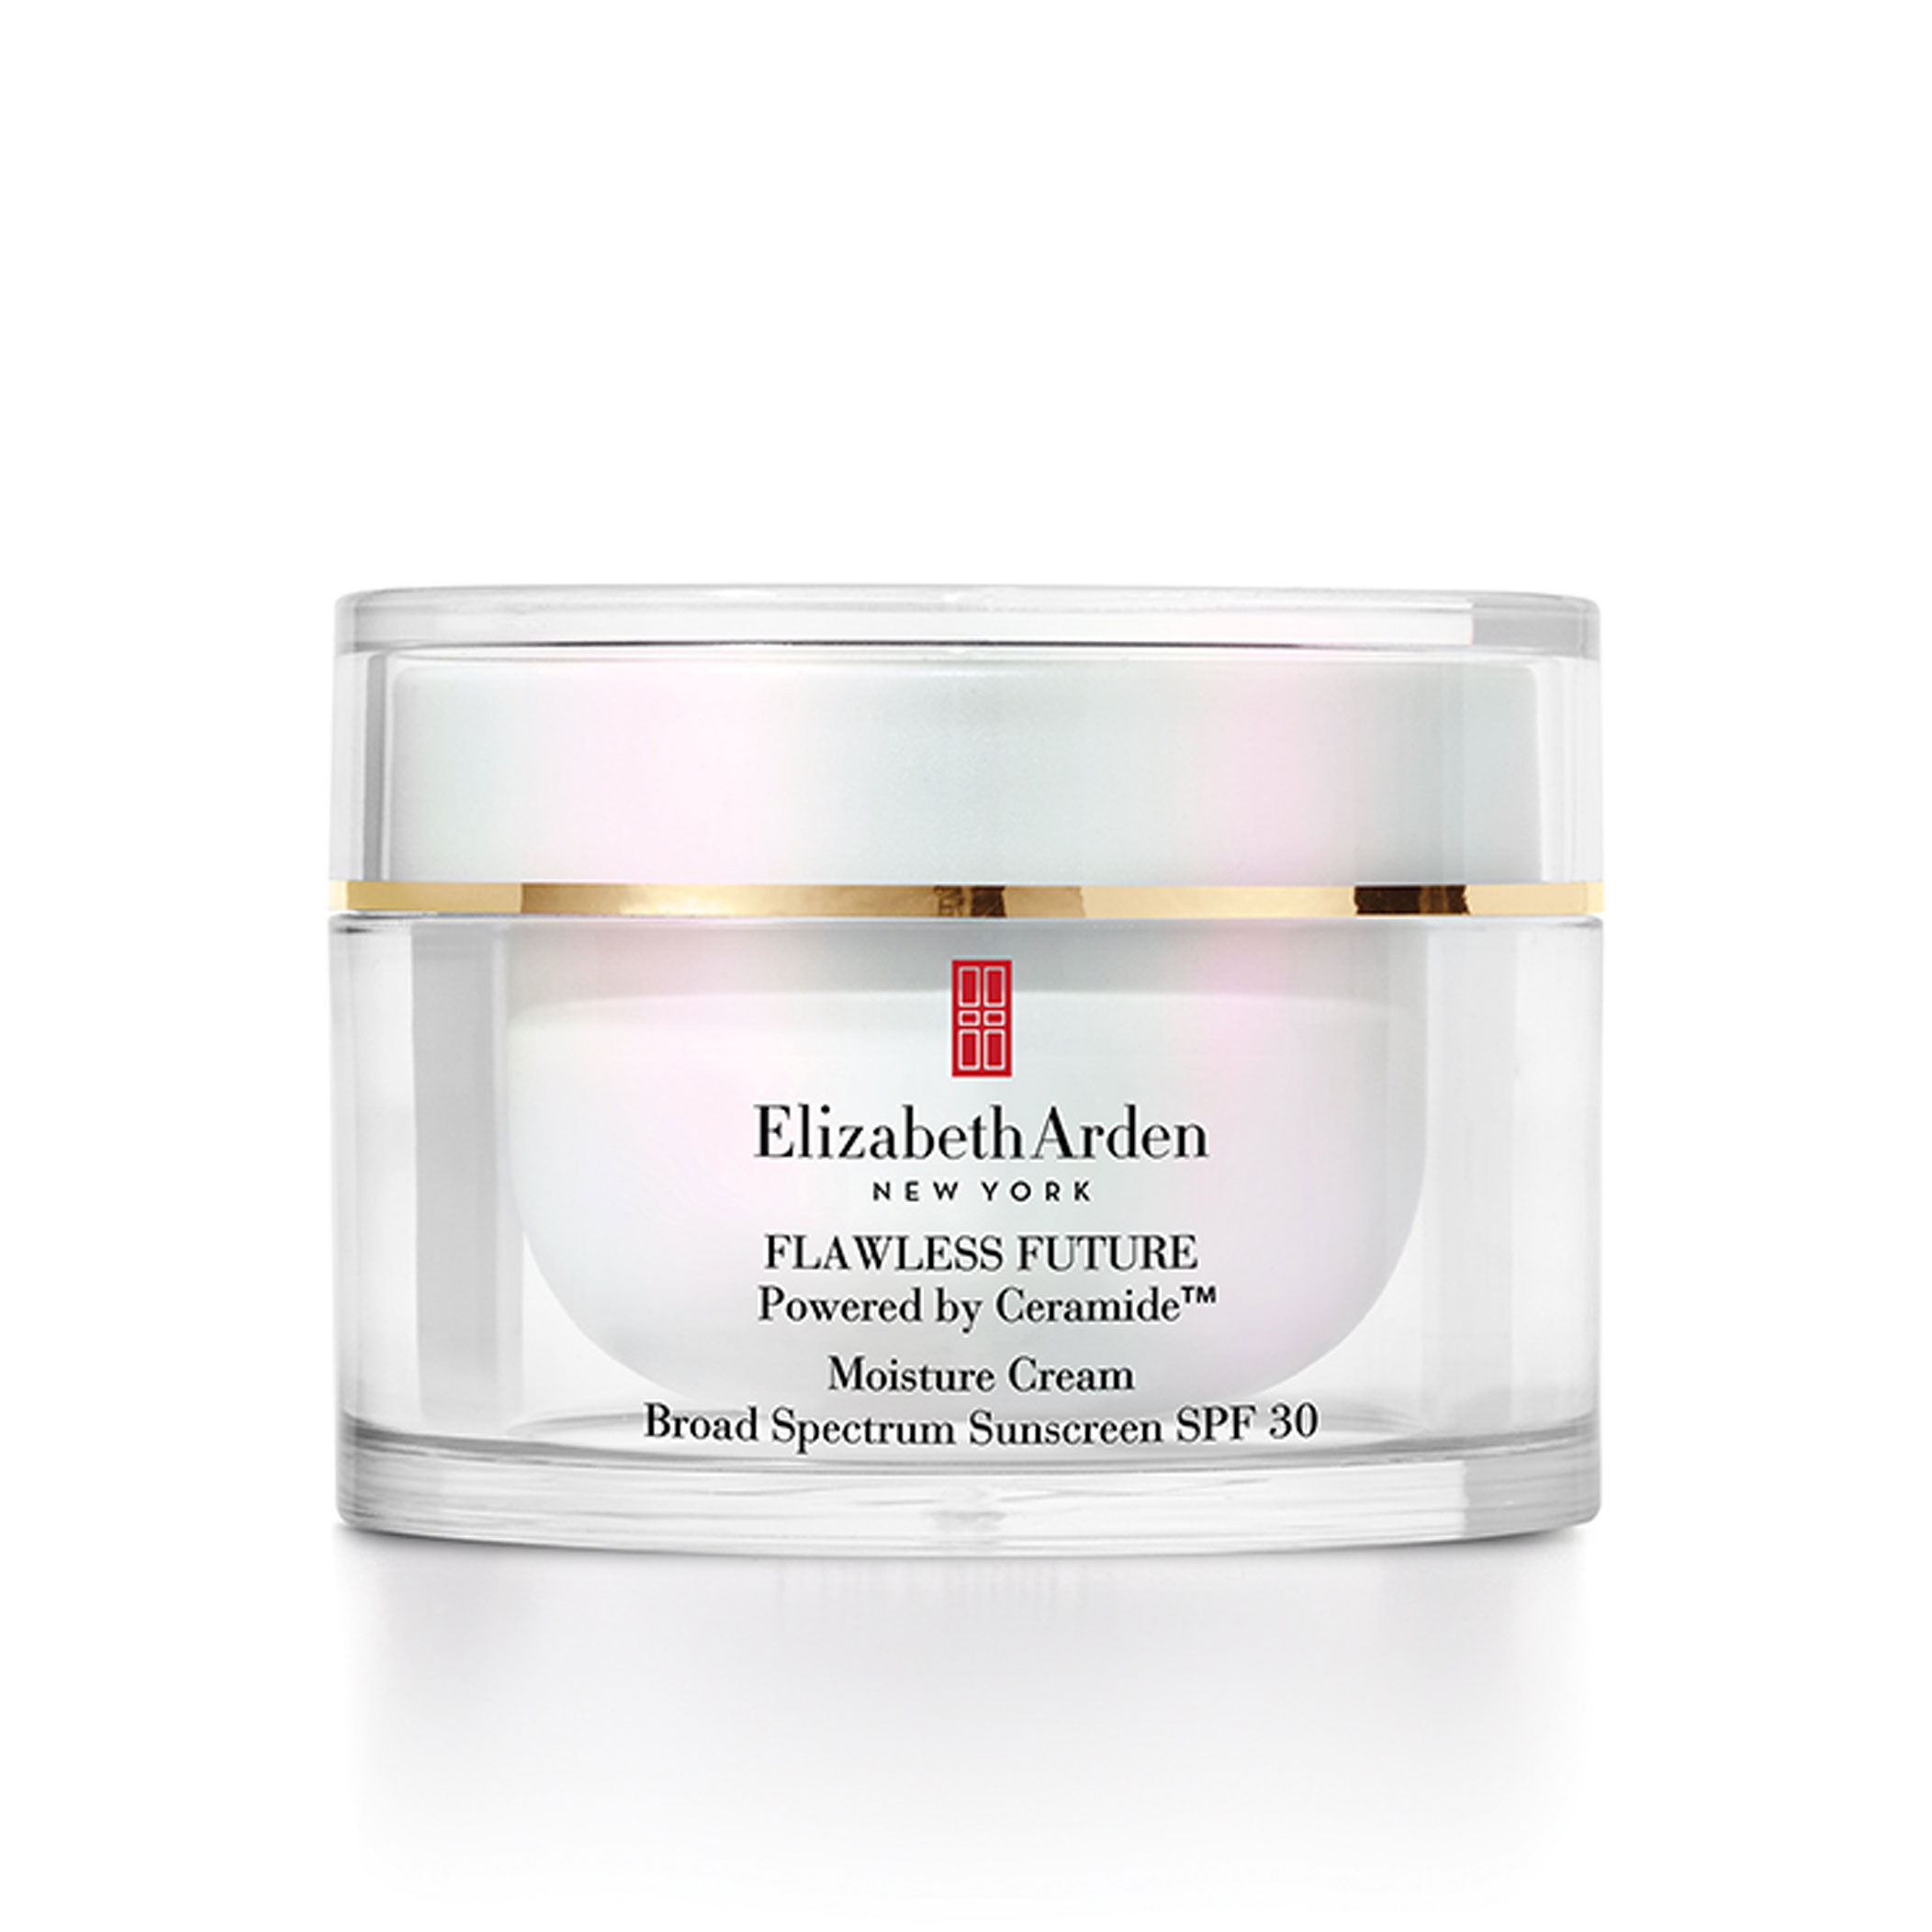 FLAWLESS FUTURE Powered by Ceramide Moisture Cream Broad Spectrum Sunscreen SPF 30